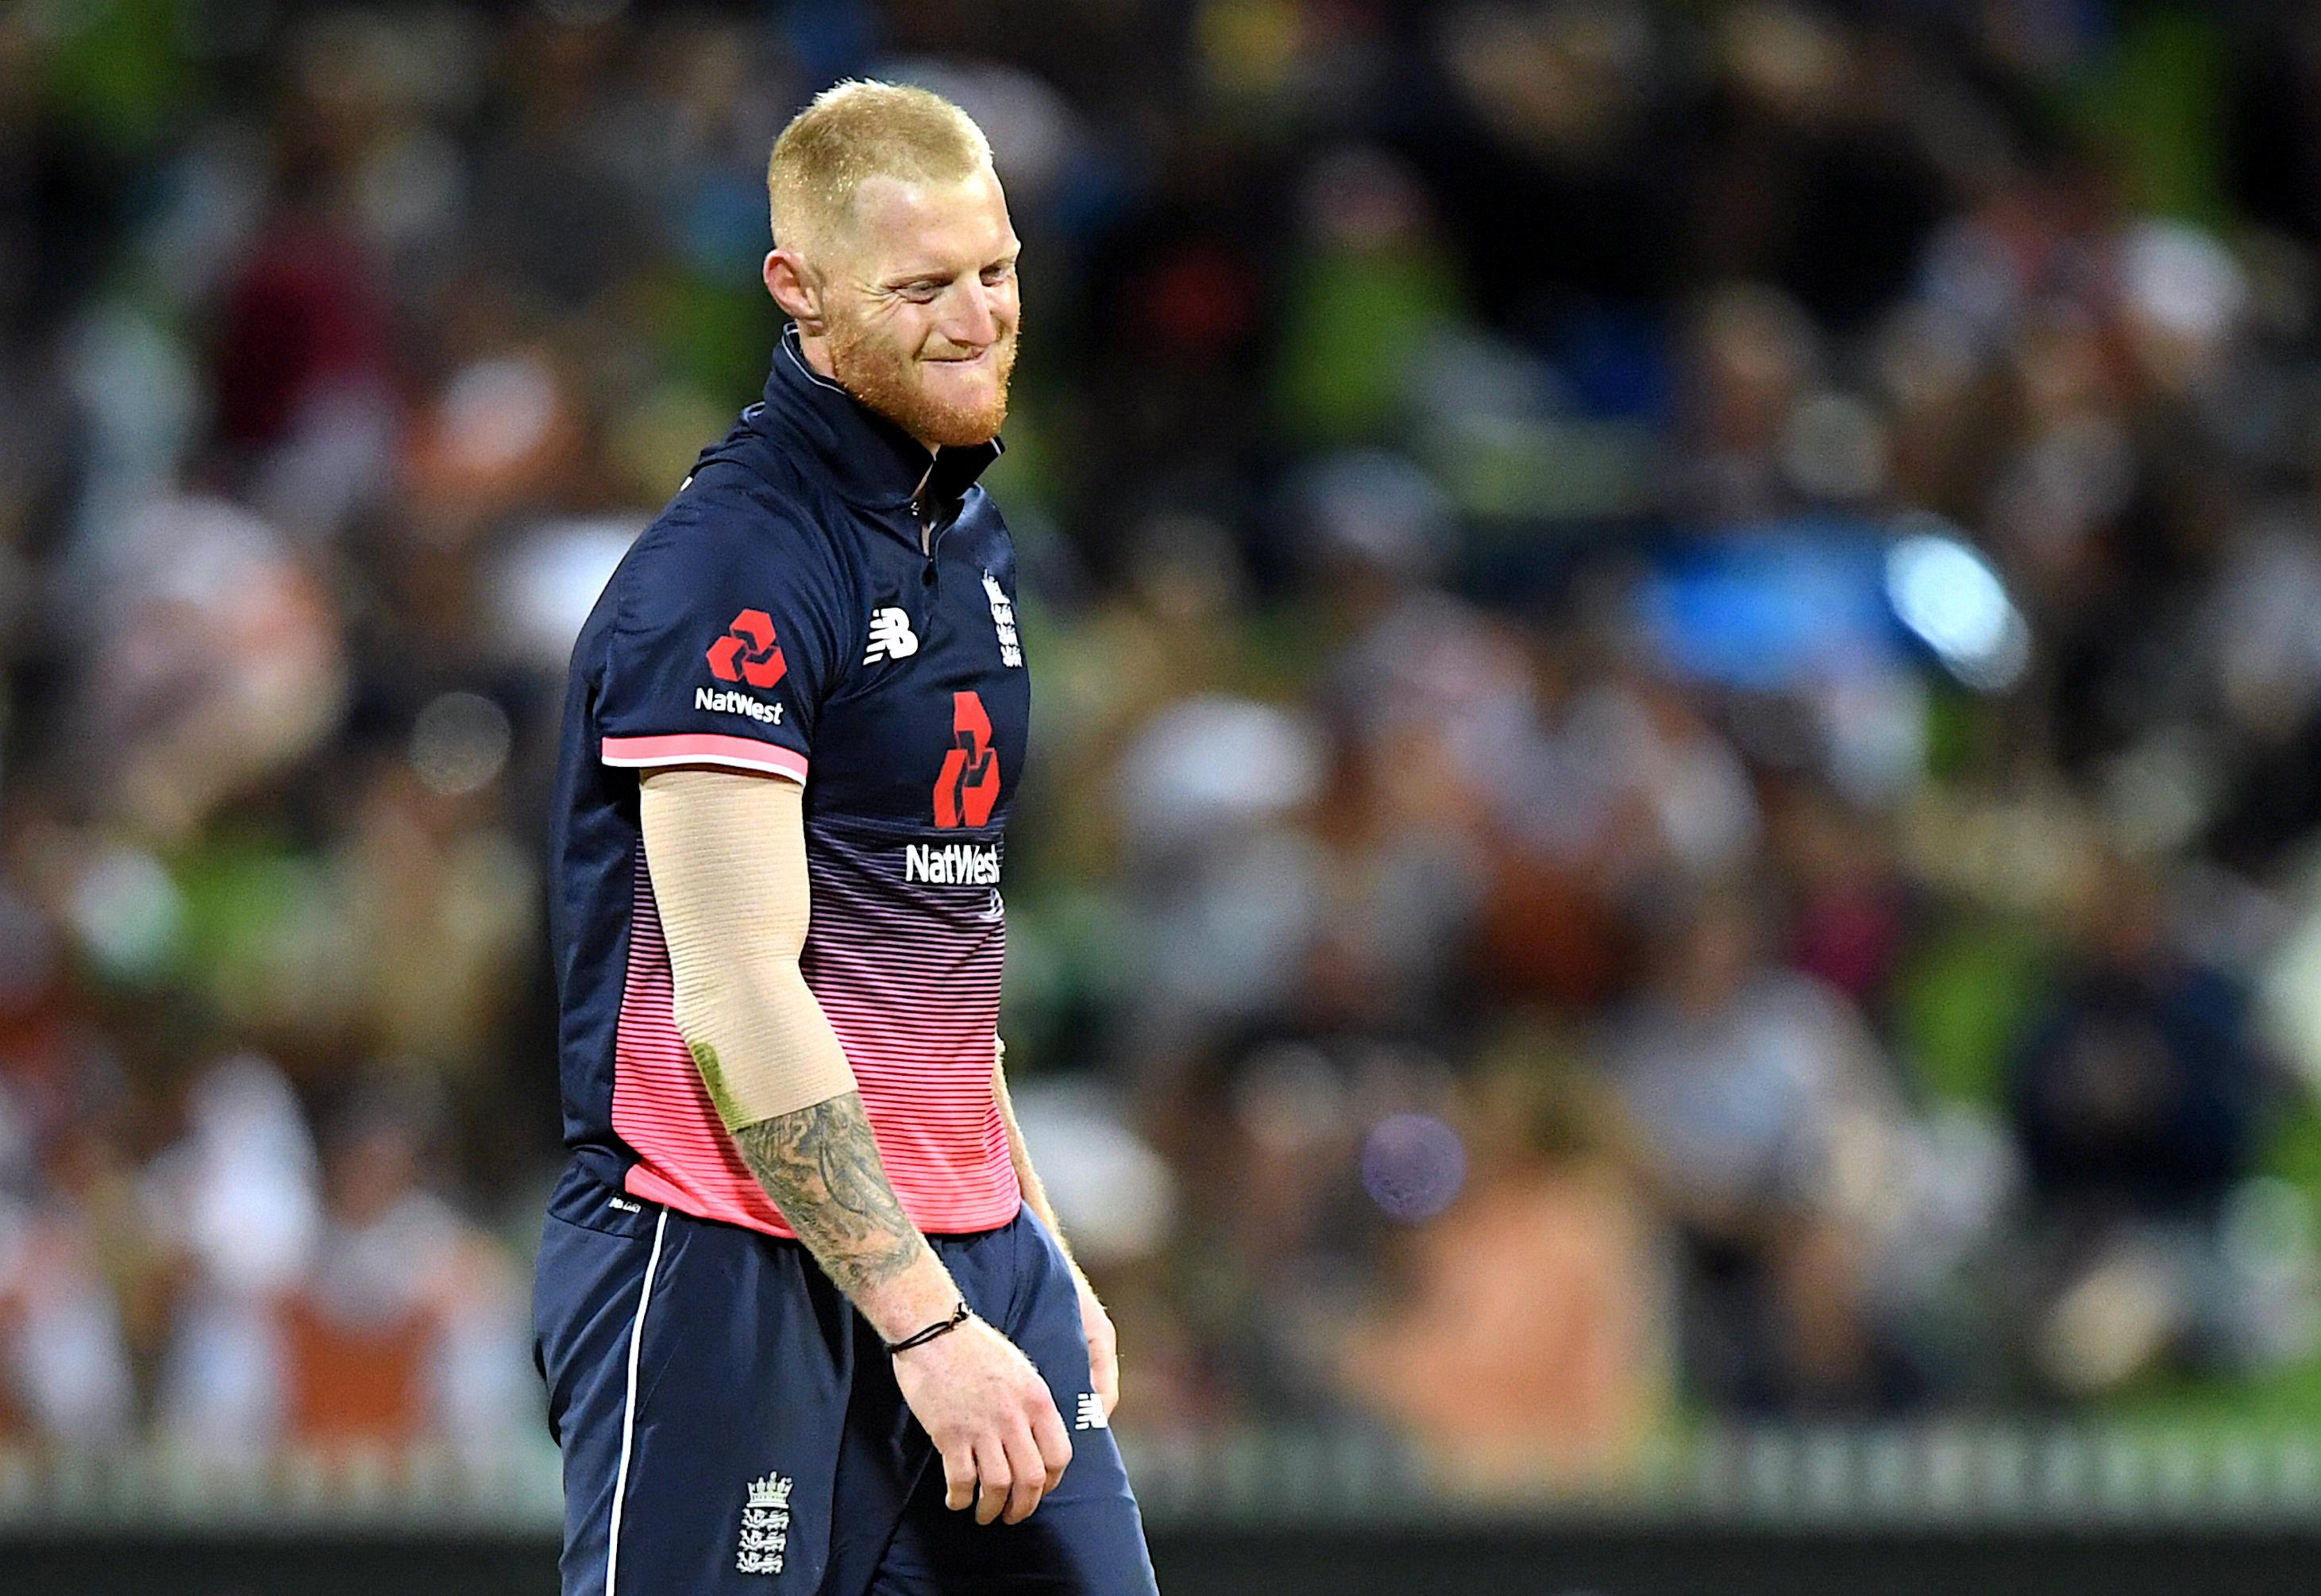 Ben Stokes made just 12 with the bat on his comeback for England but also took two wickets